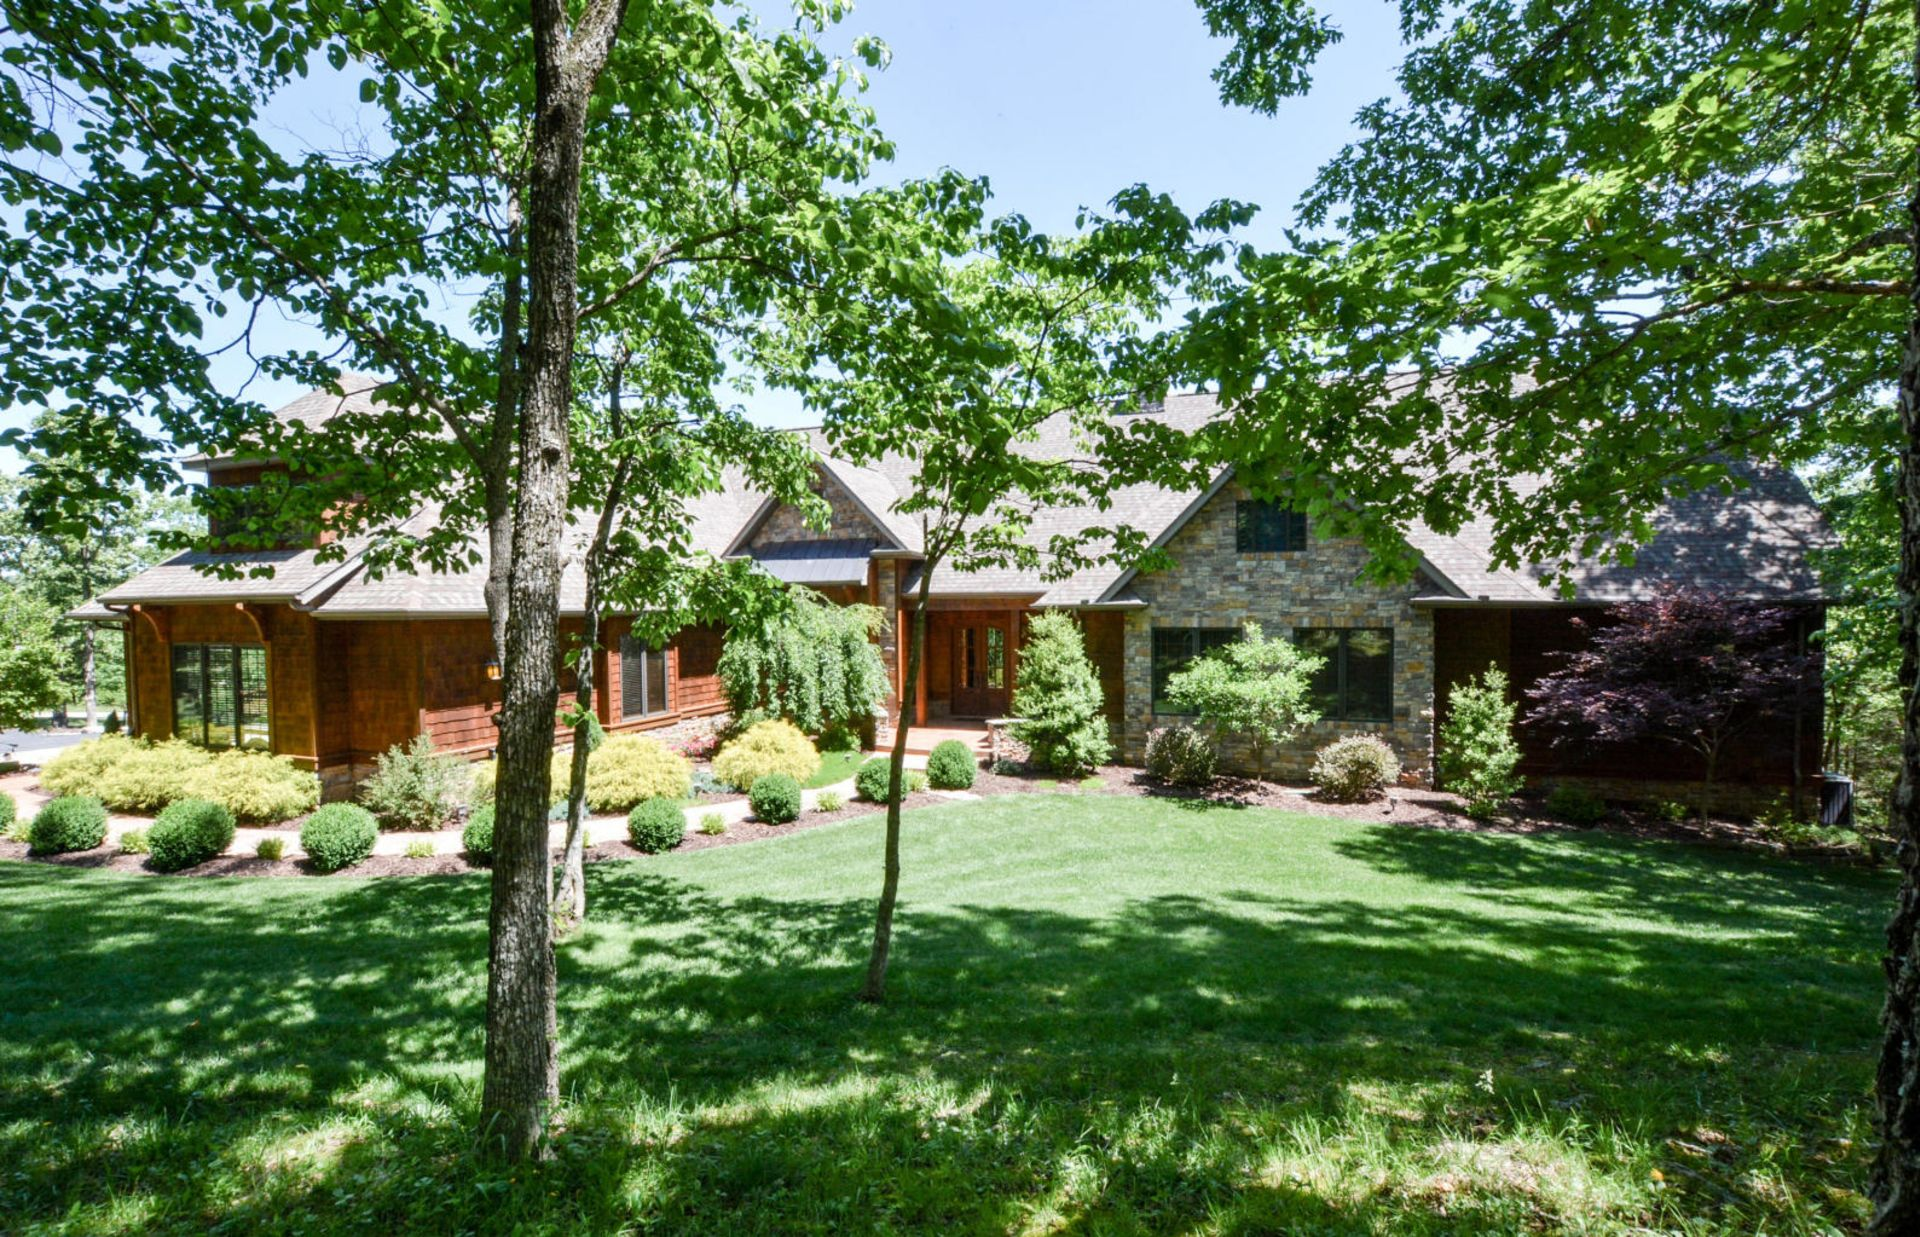 This Saddlebrooke, MO home is just 30 Minutes South of Springfield in a Wooded Setting!!!